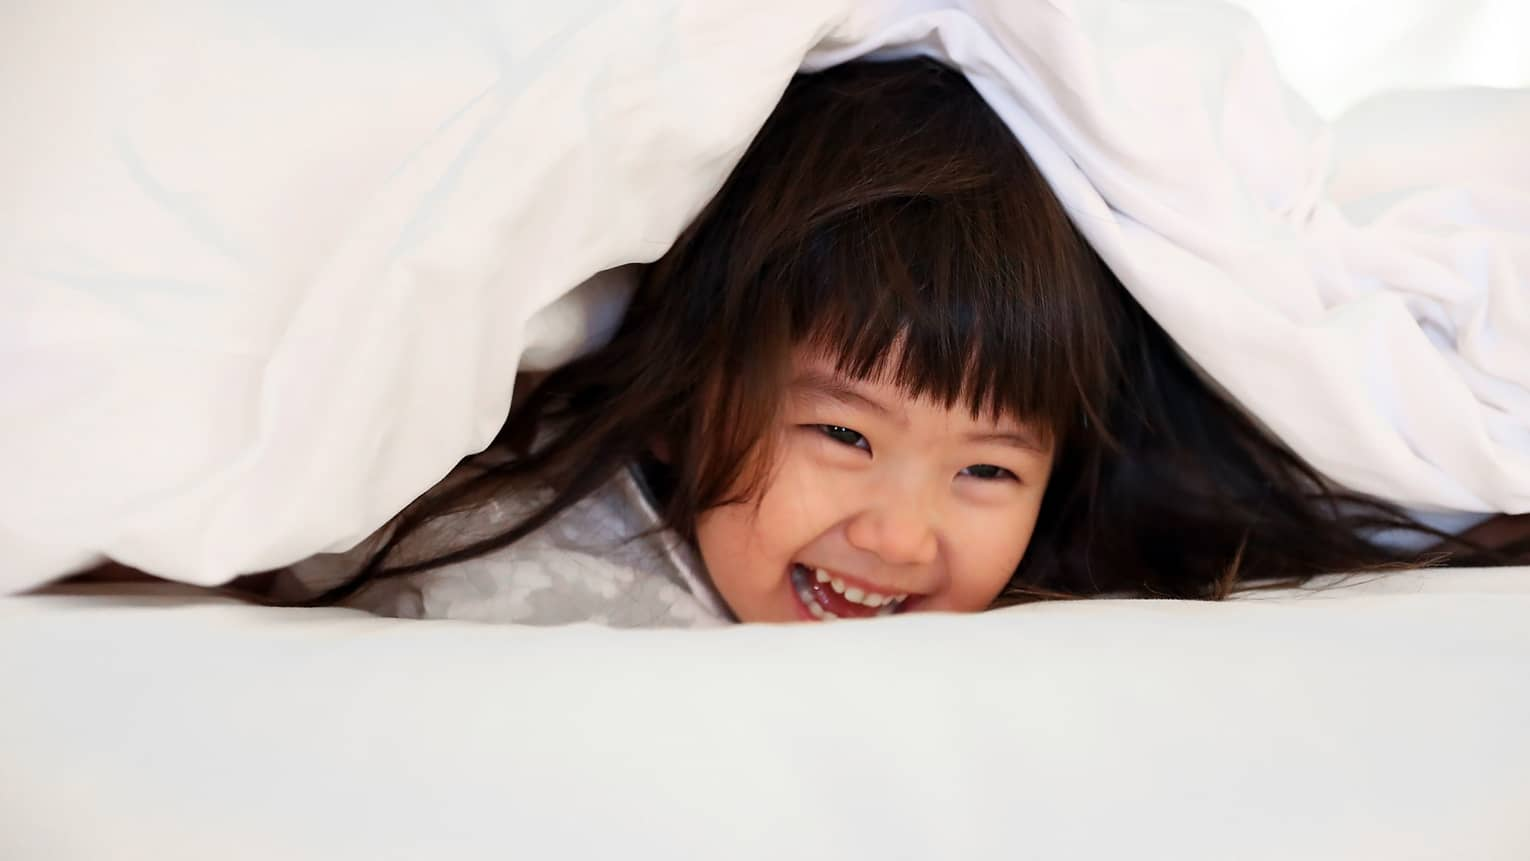 Young girl laughing as she plays under a white bed sheet